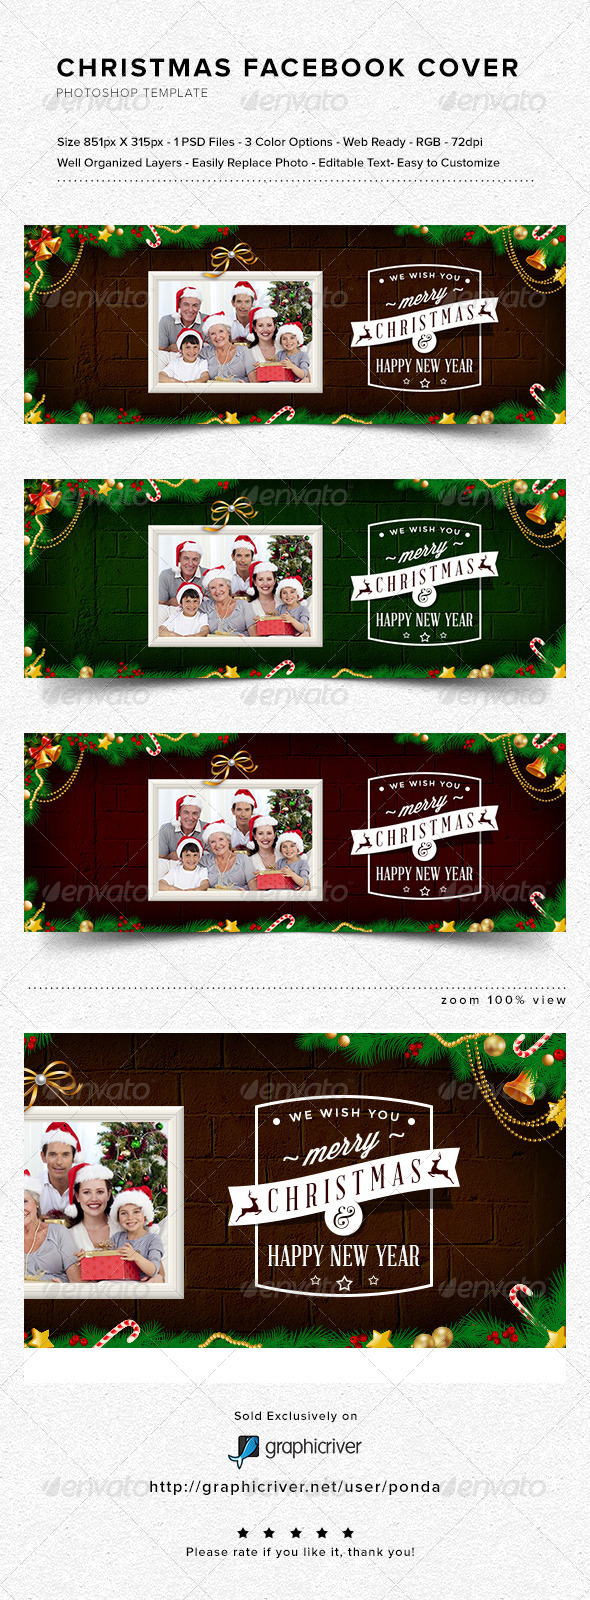 GraphicRiver Christmas Facebook Cover 6399831